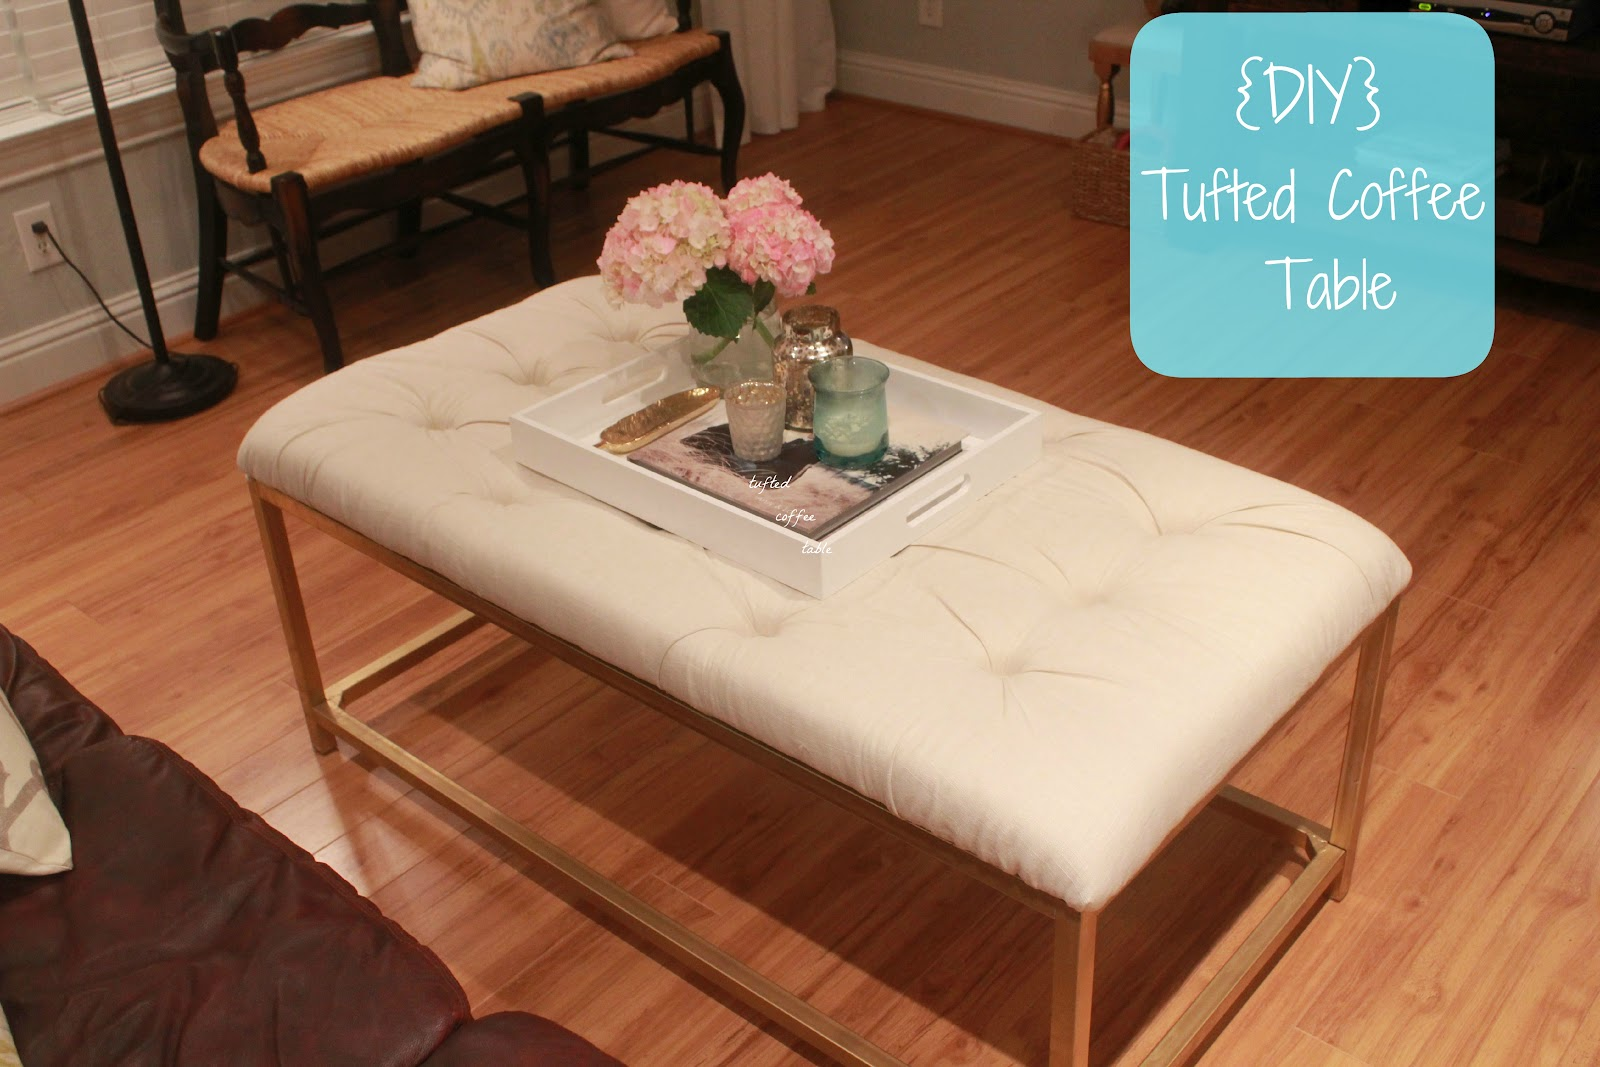 Fresh and fancy diy tufted coffee table diy tufted coffee table geotapseo Image collections